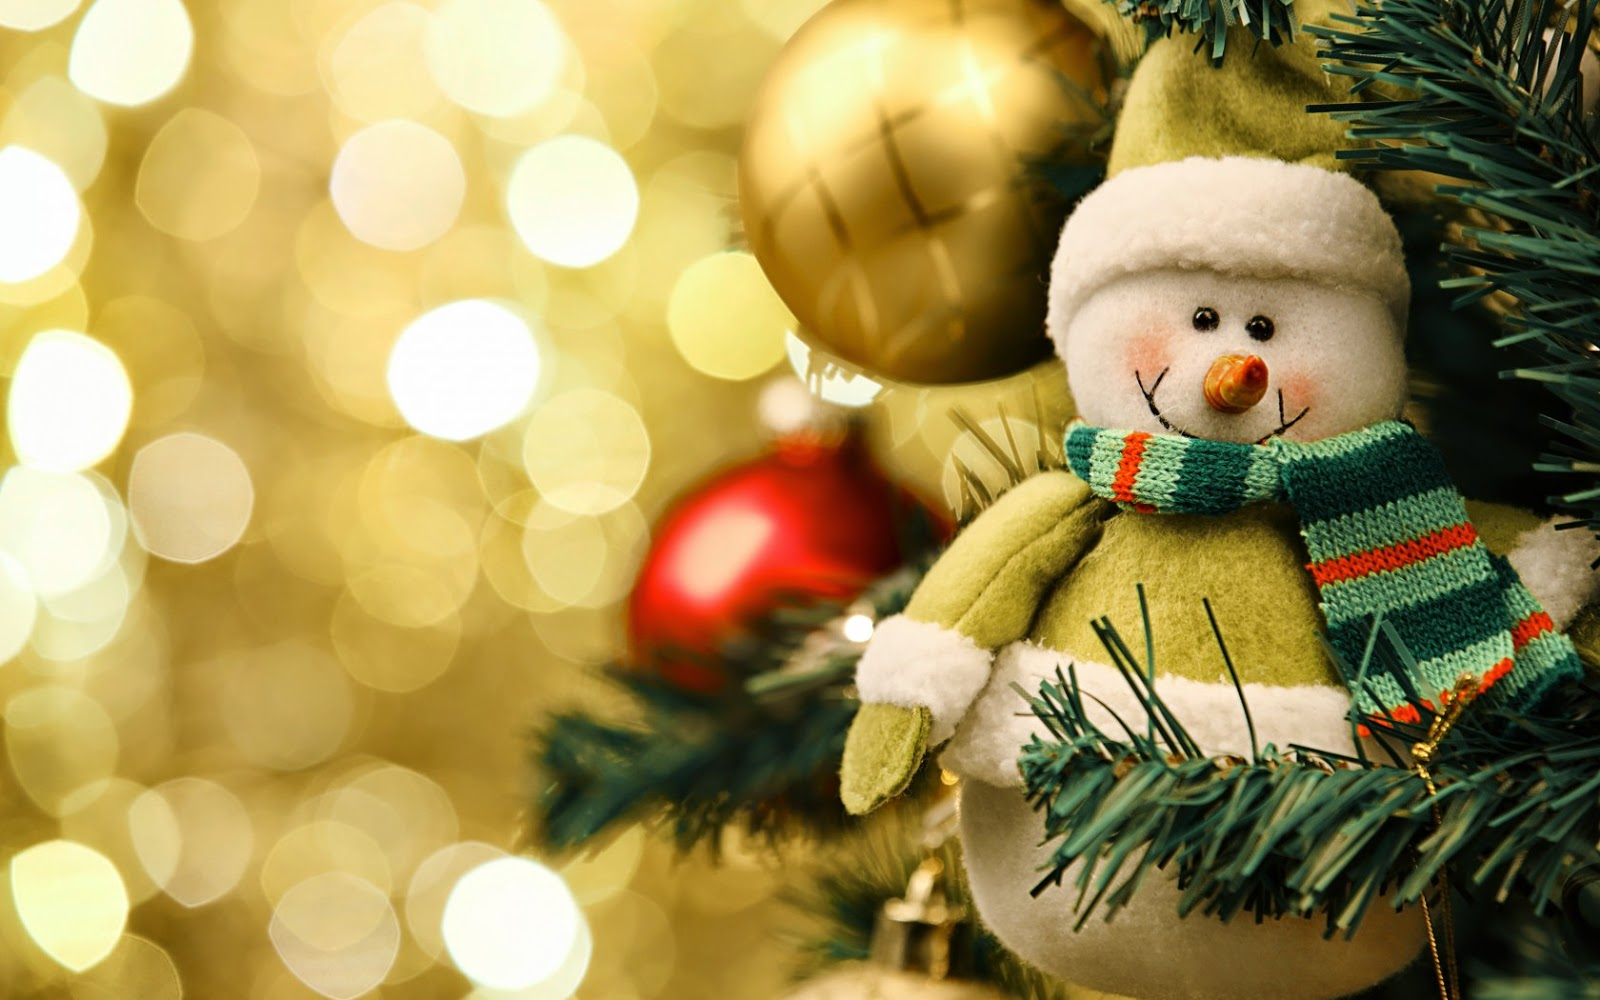 Little-snowman-smiling-beautiful-photo-HD-picture-for-facebook-whatsapp-sharing.jpg